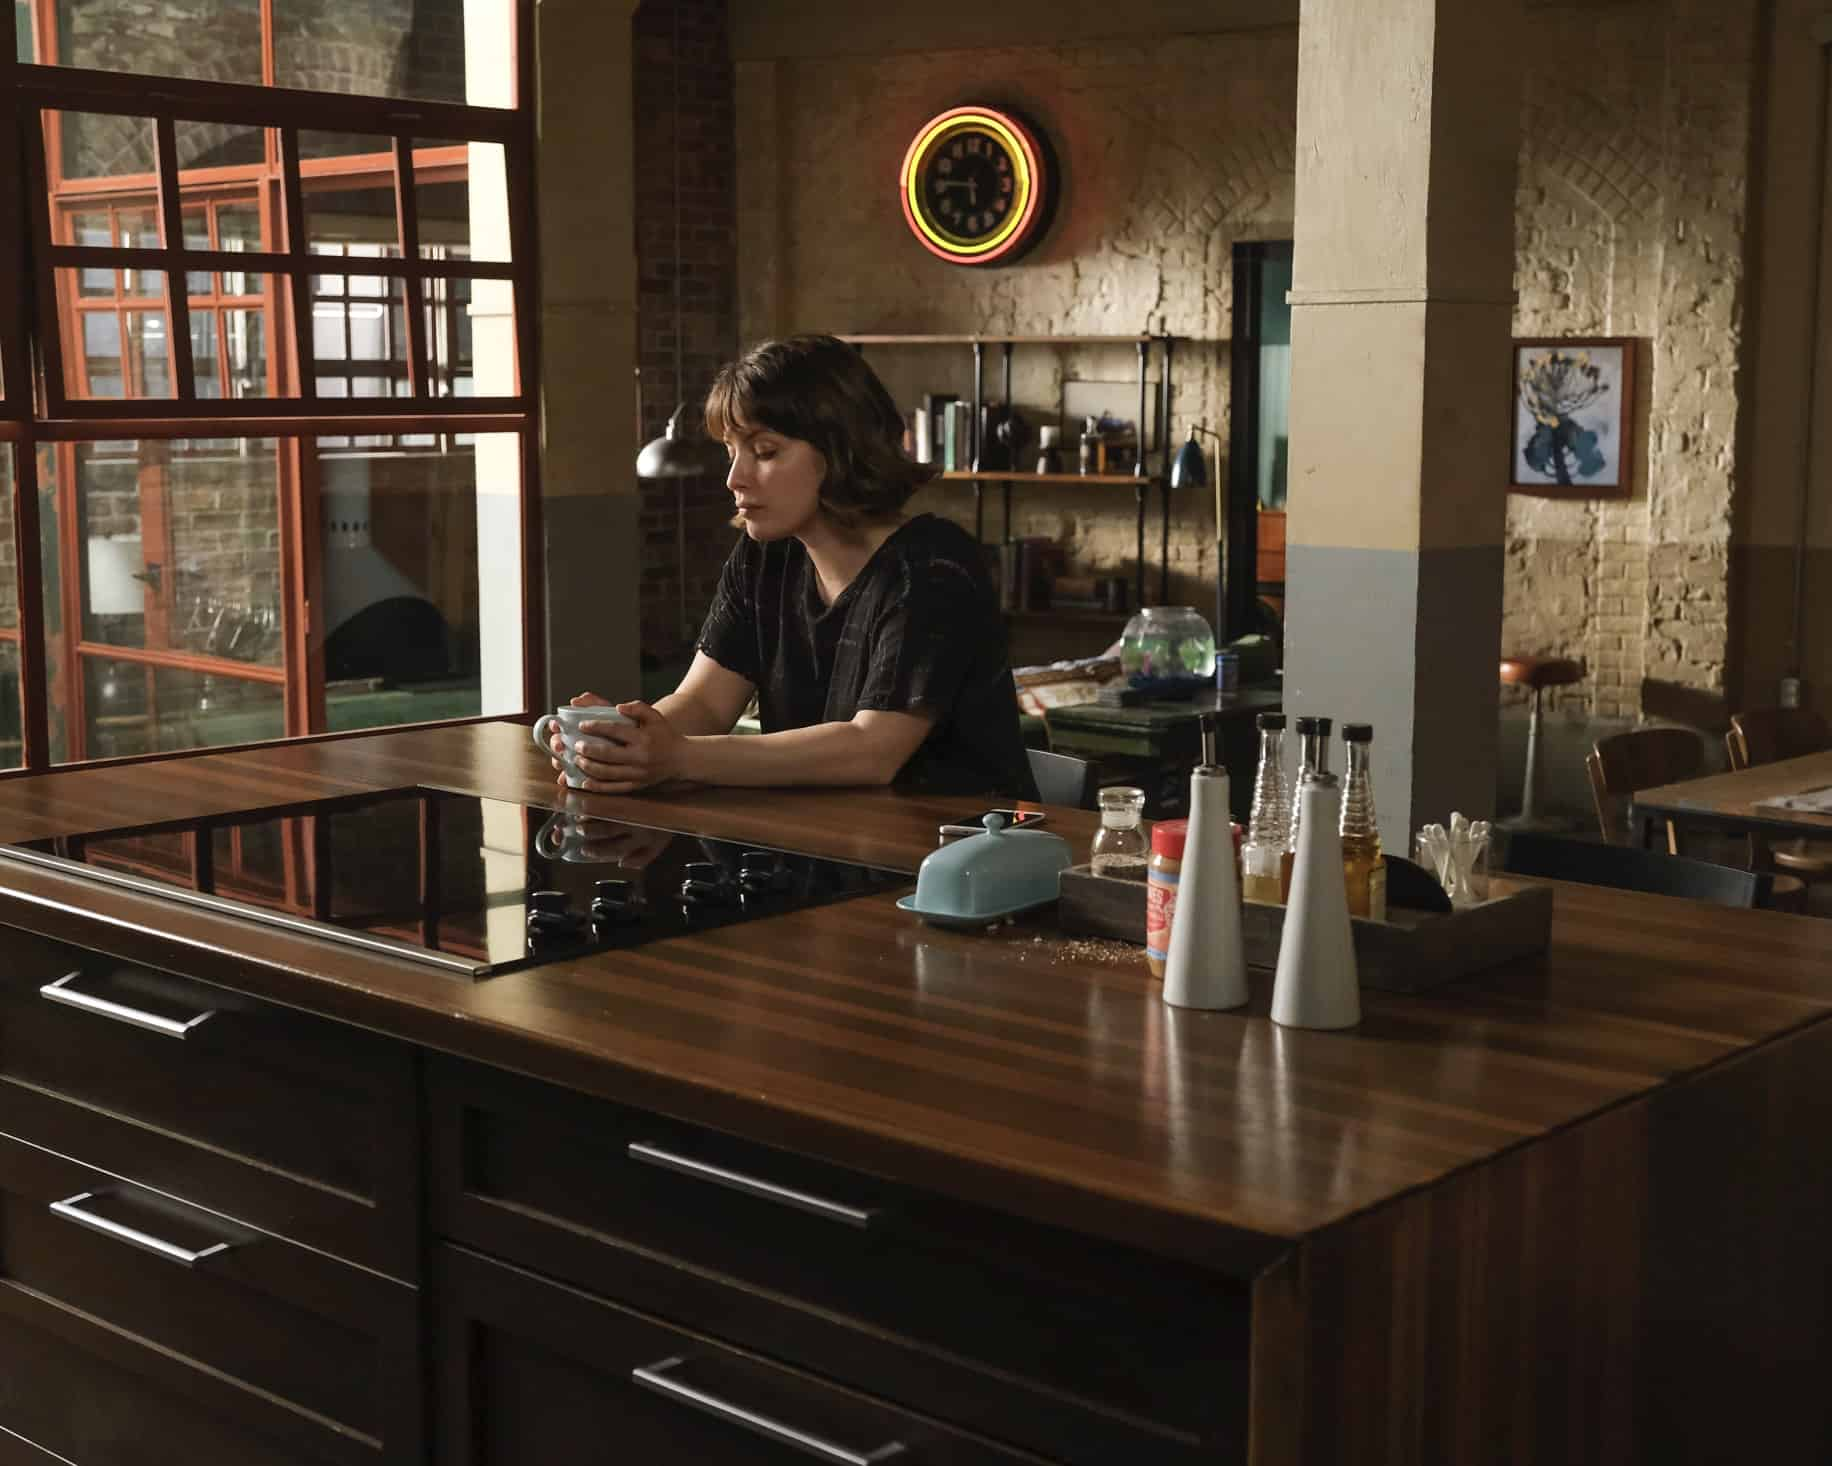 """THE GOOD DOCTOR Season 4 Episode 17- """"Letting Go"""" – Dr. Claire Brown and the team must face hard truths about what lines they are willing to cross when one of Claire's idols becomes her patient on """"The Good Doctor,"""" MONDAY, MAY 17 (10:00-11:00 p.m. EDT), on ABC. (ABC/Jeff Weddell) PAIGE SPARA"""